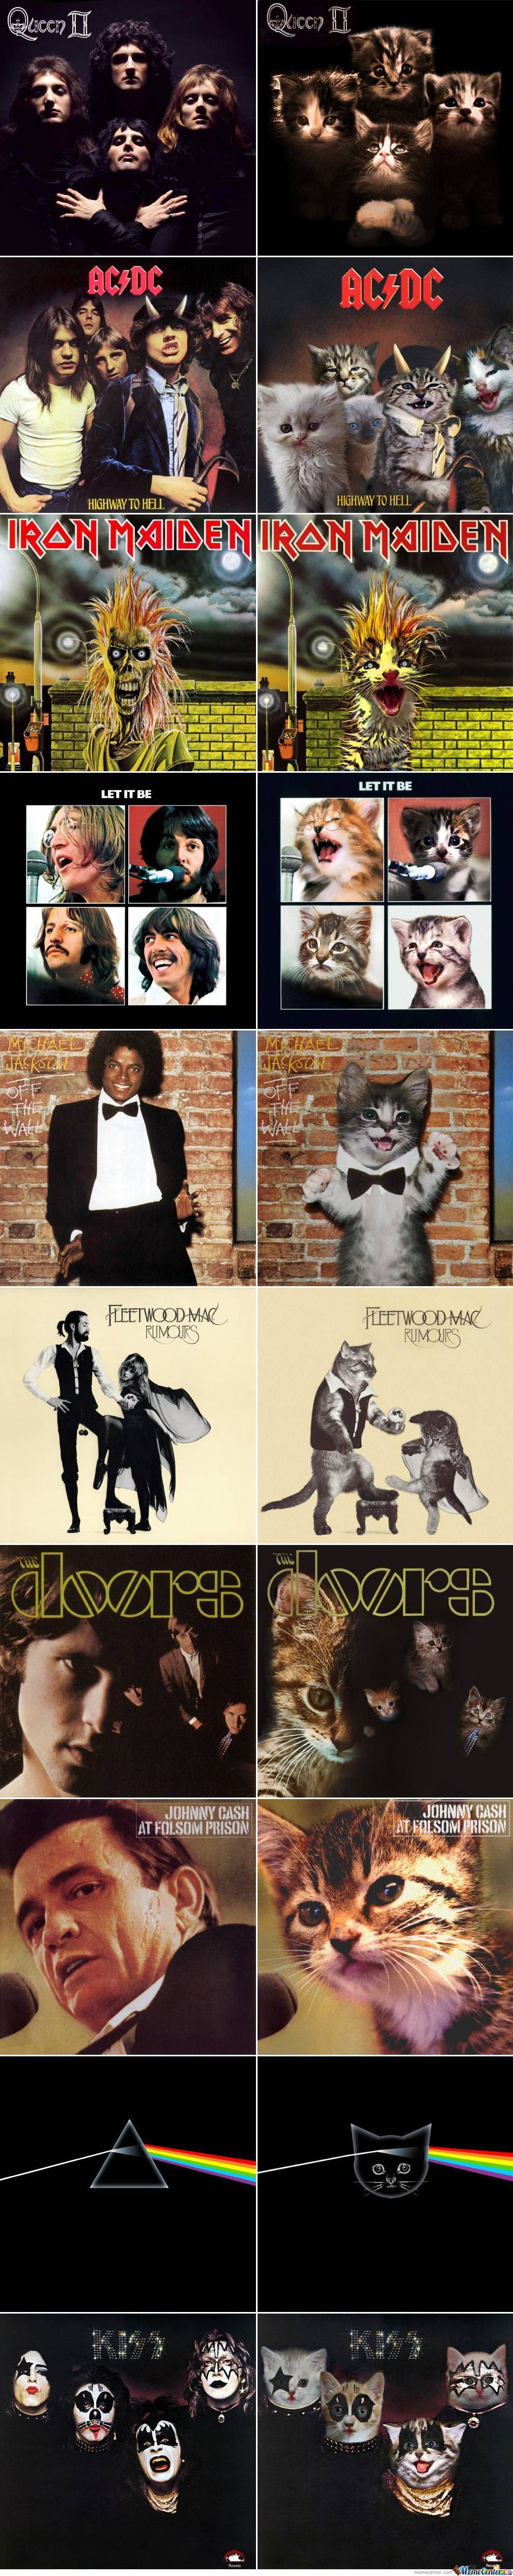 10 classic album covers recreated with kittens